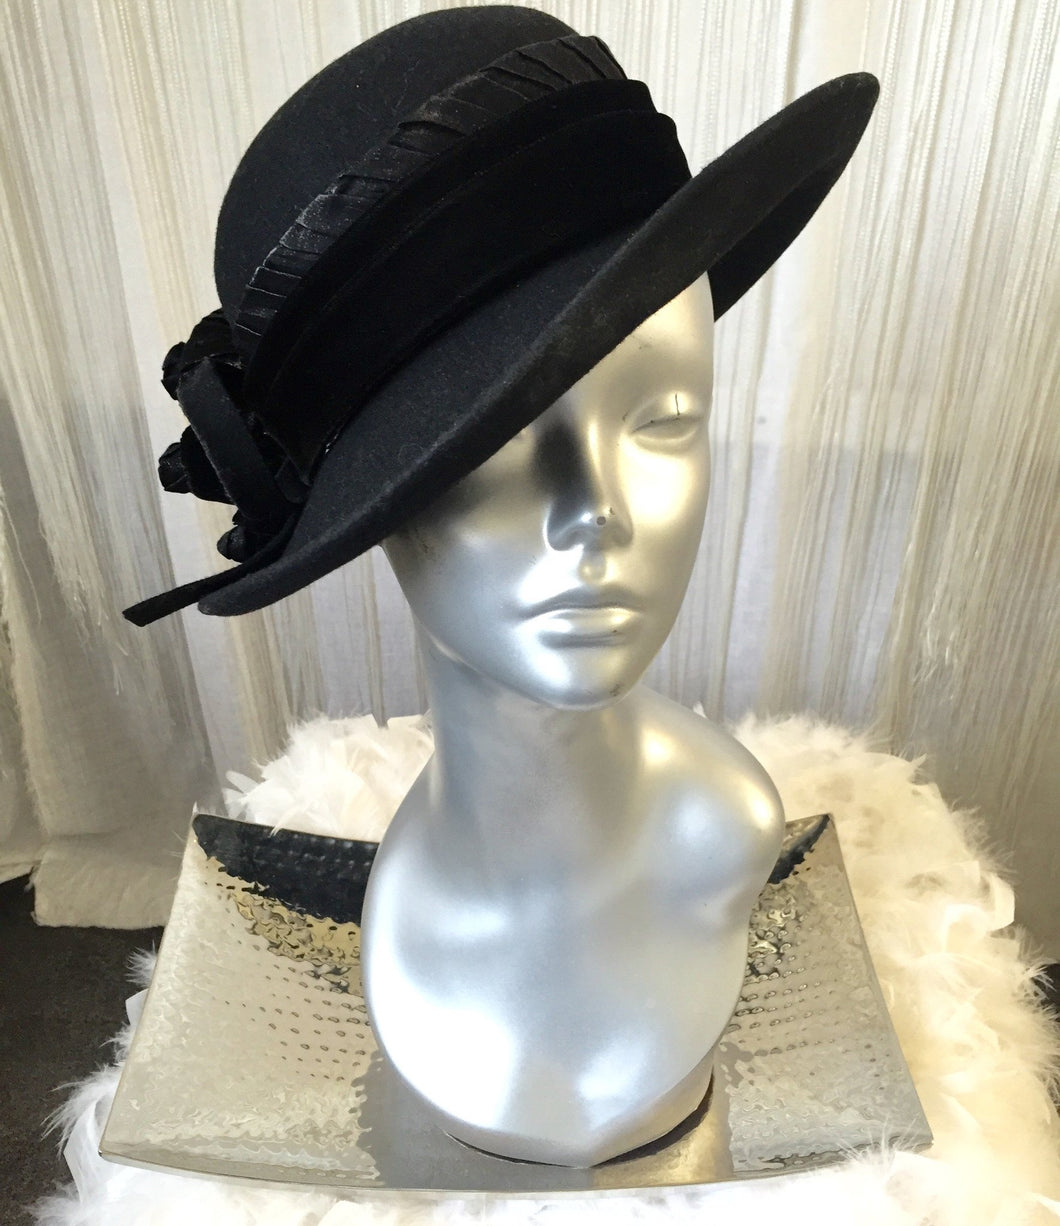 Galliano Sorbatti Made In Italy Black Bucket Hat With Fur Detail - My Designer Vintage Closet